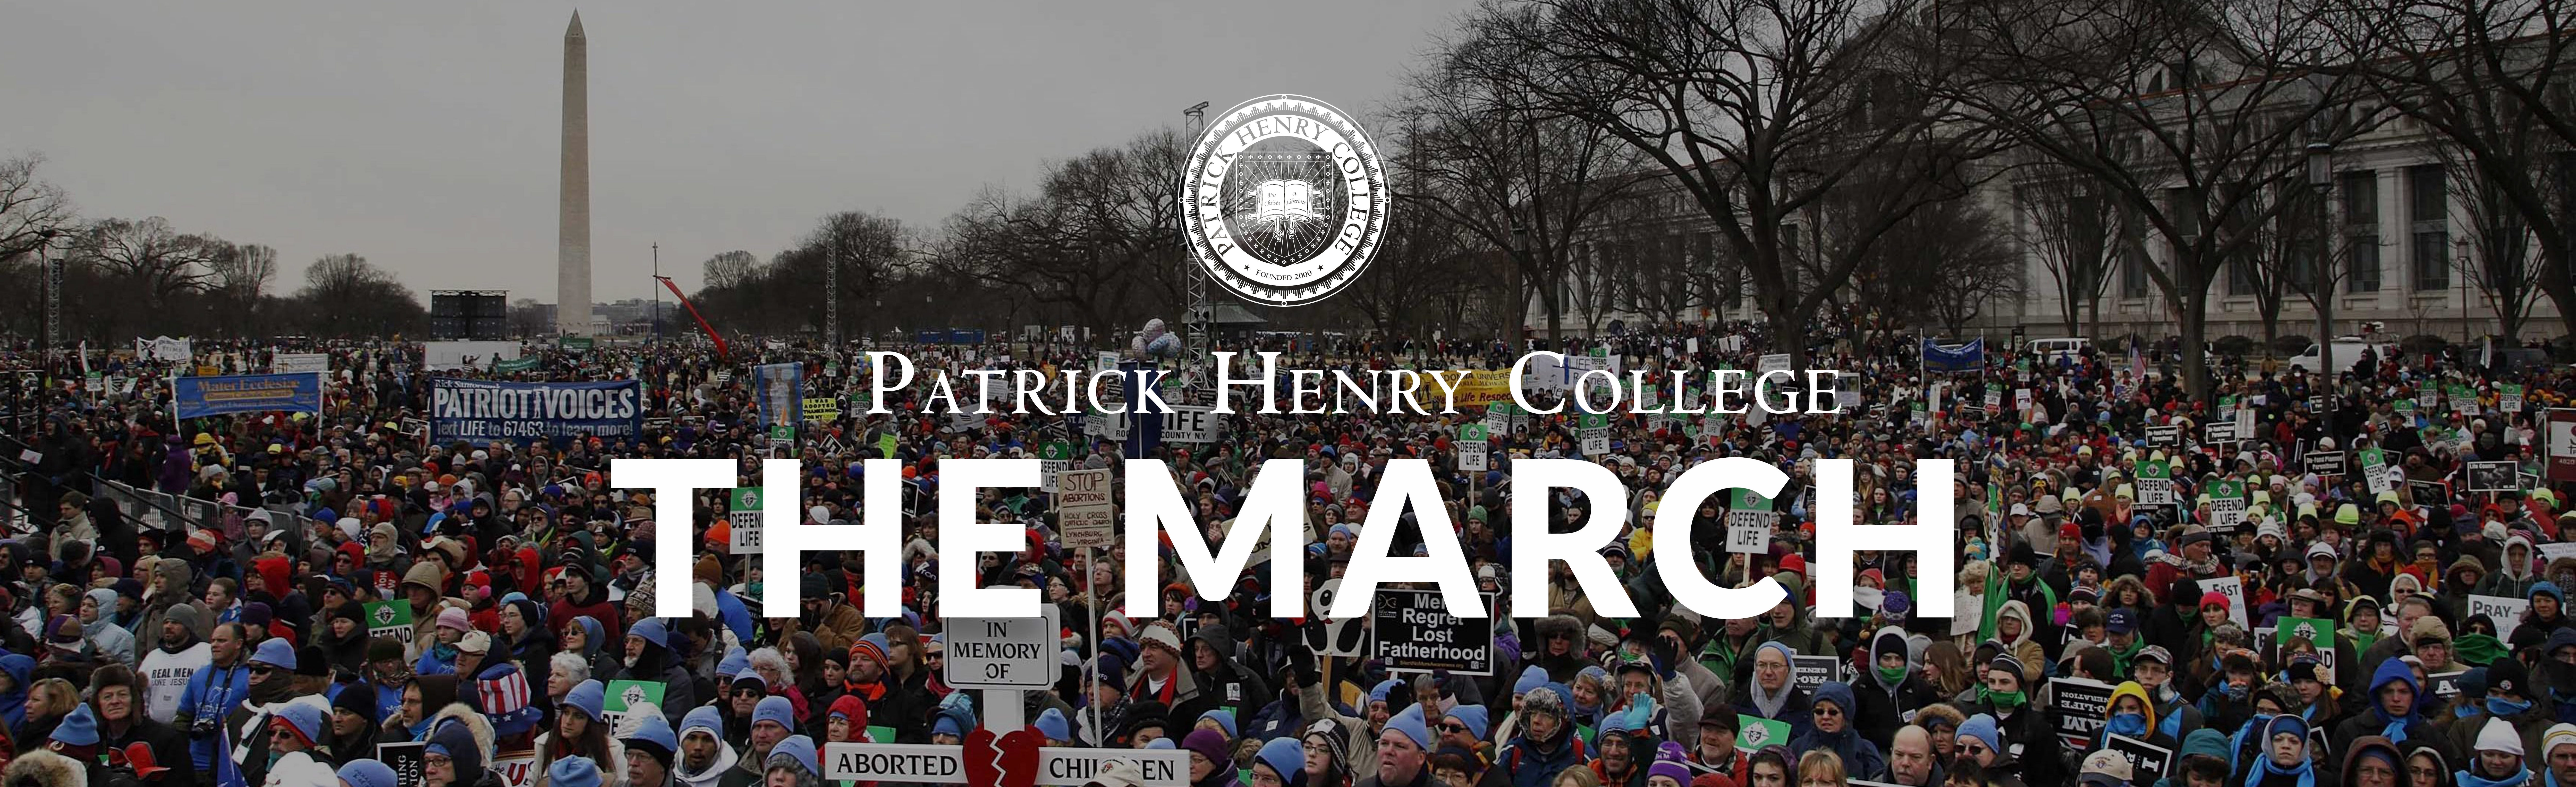 Will you march with us?